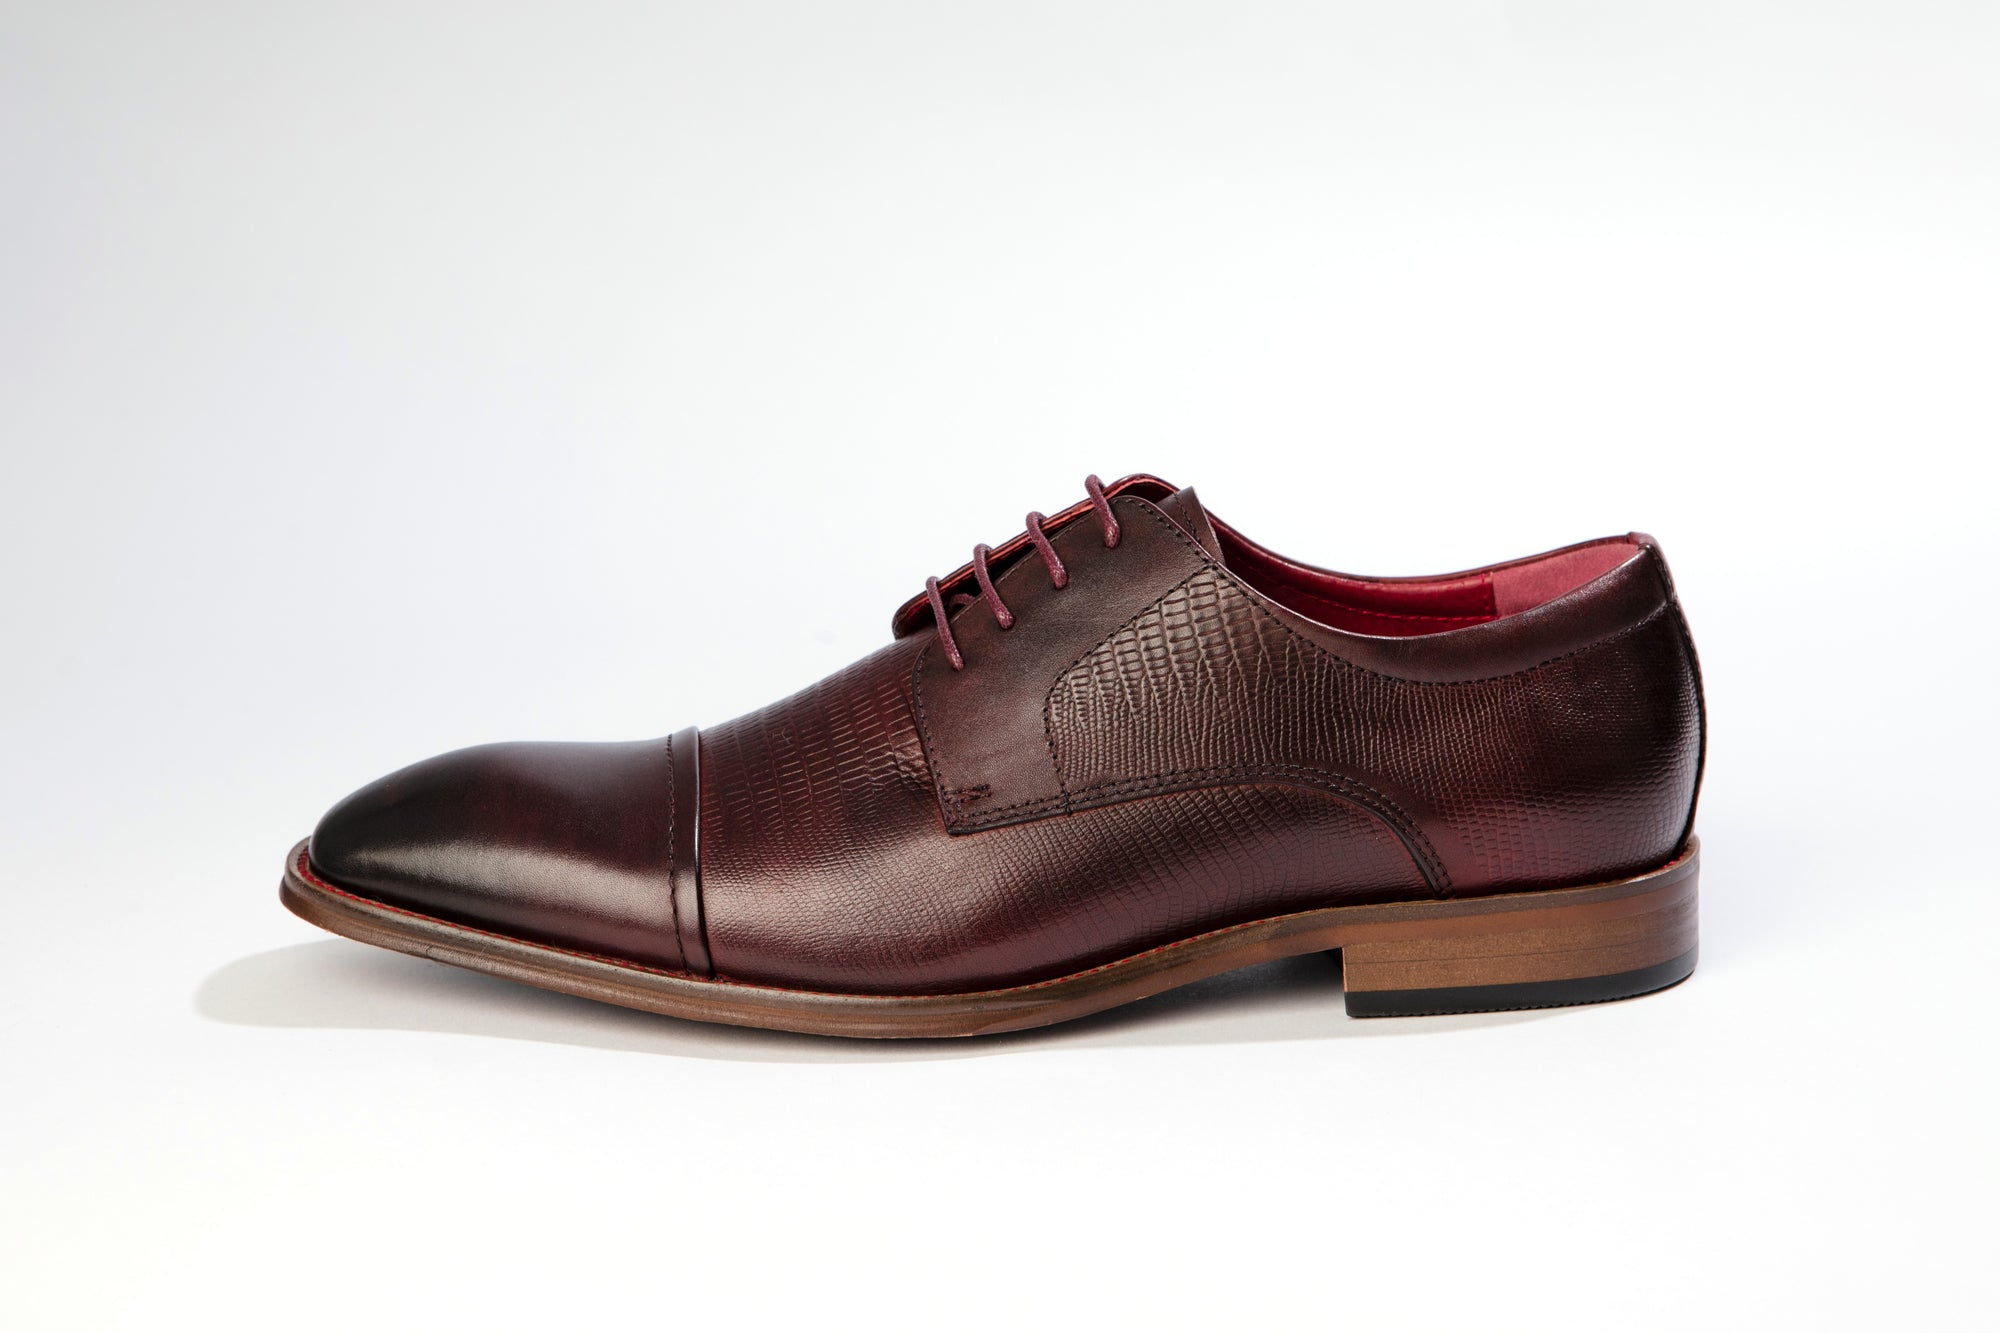 6th Sense Formal Eton Shoe